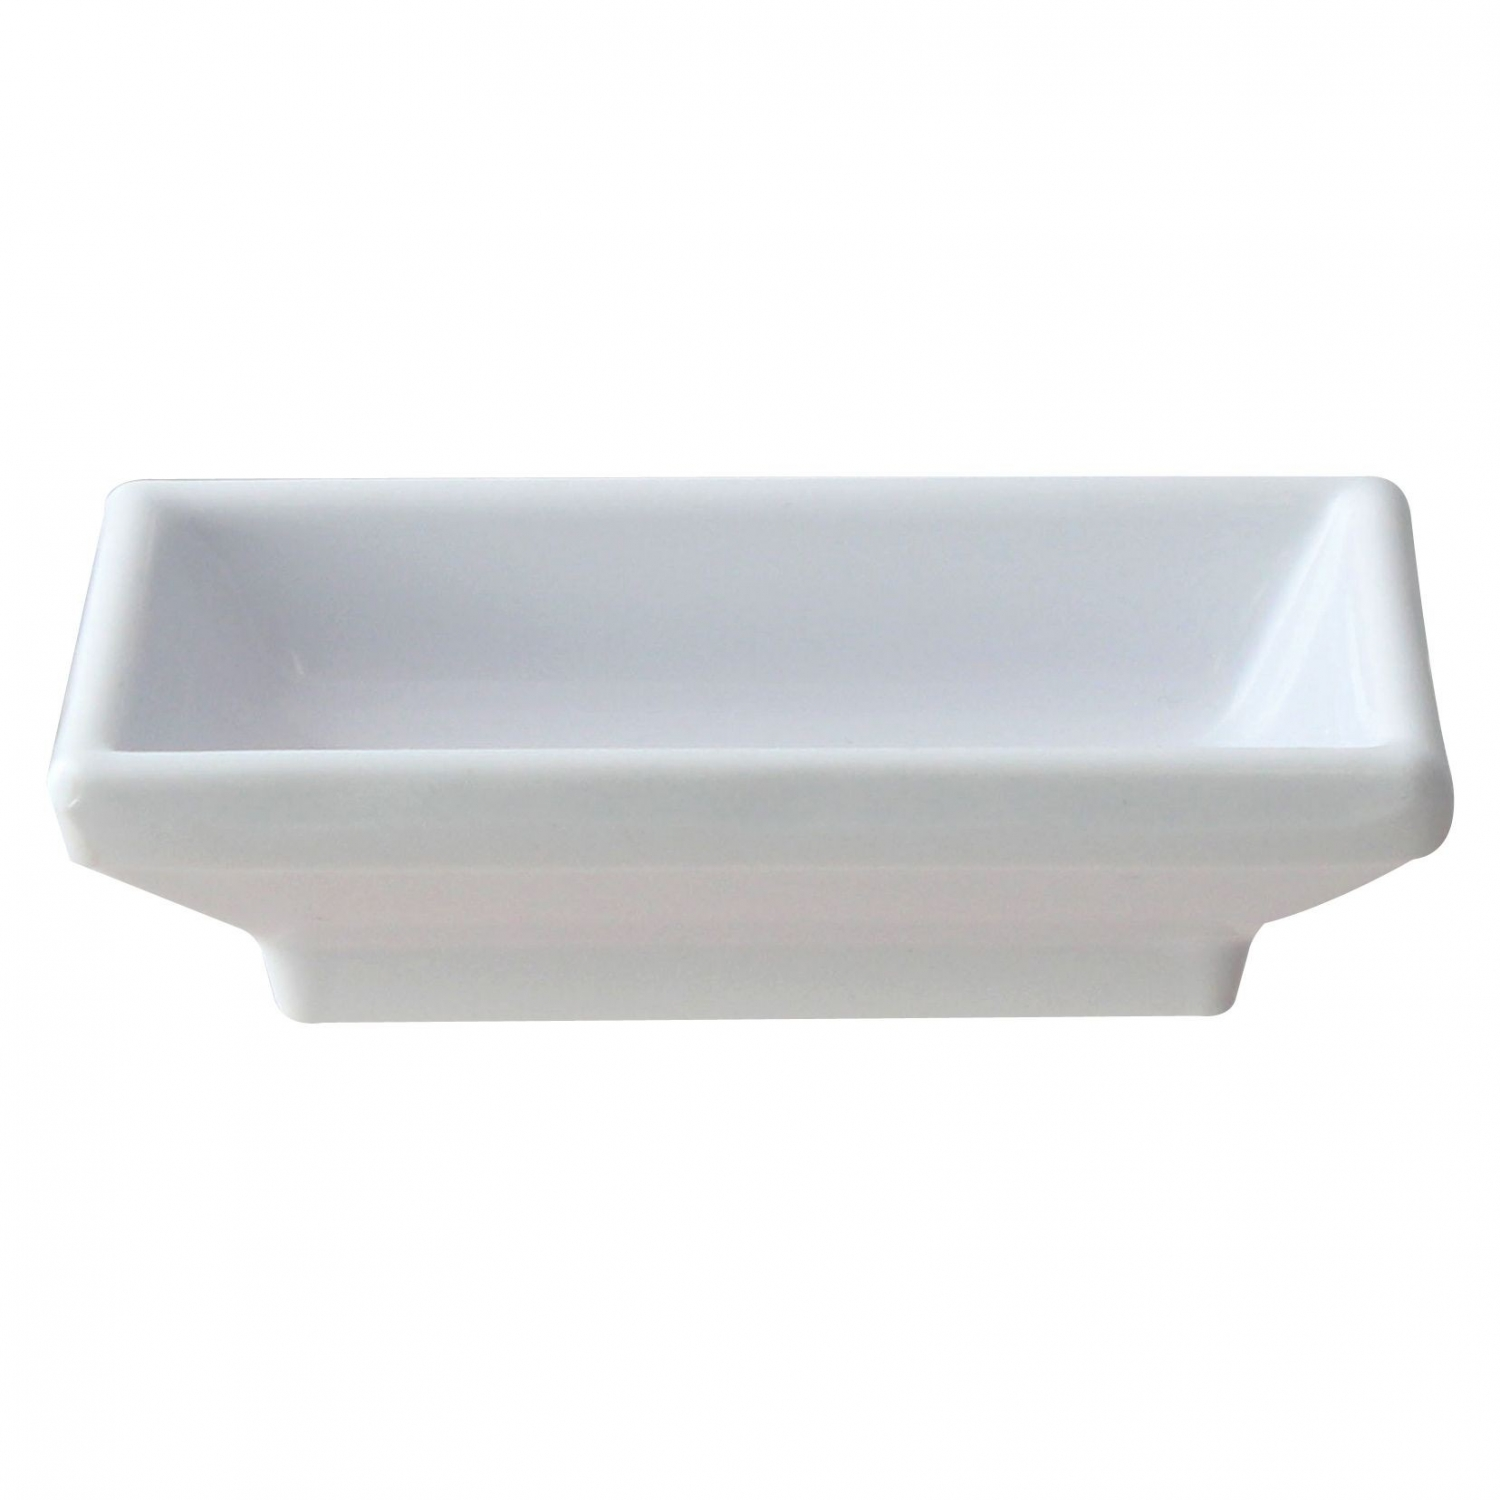 Thunder Group 19001WT Classic White Series Sauce Dish 2 oz. - 1 doz